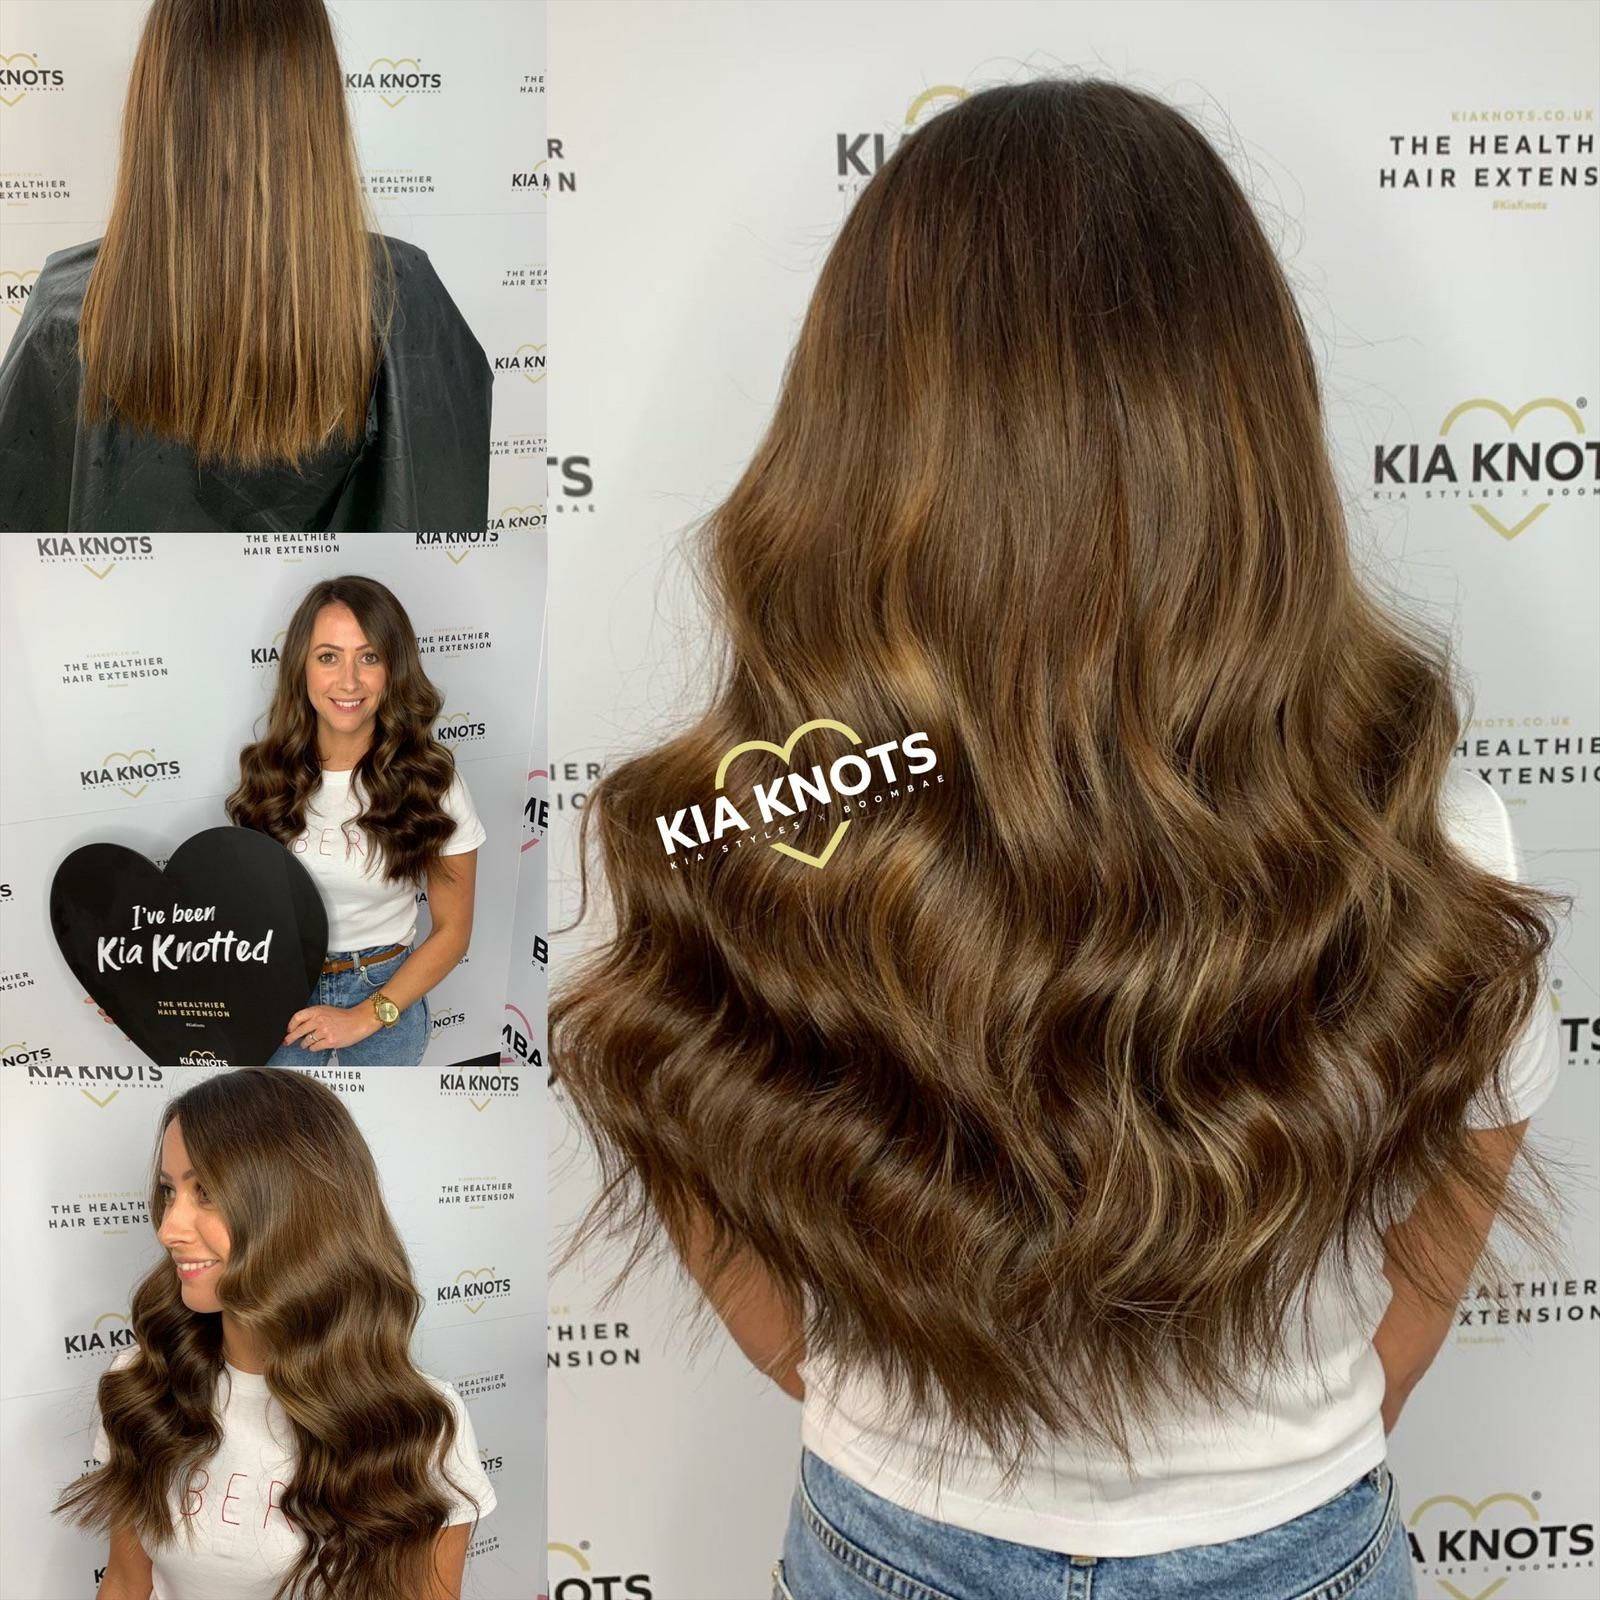 Kia Knots Healthy Hair Extensions